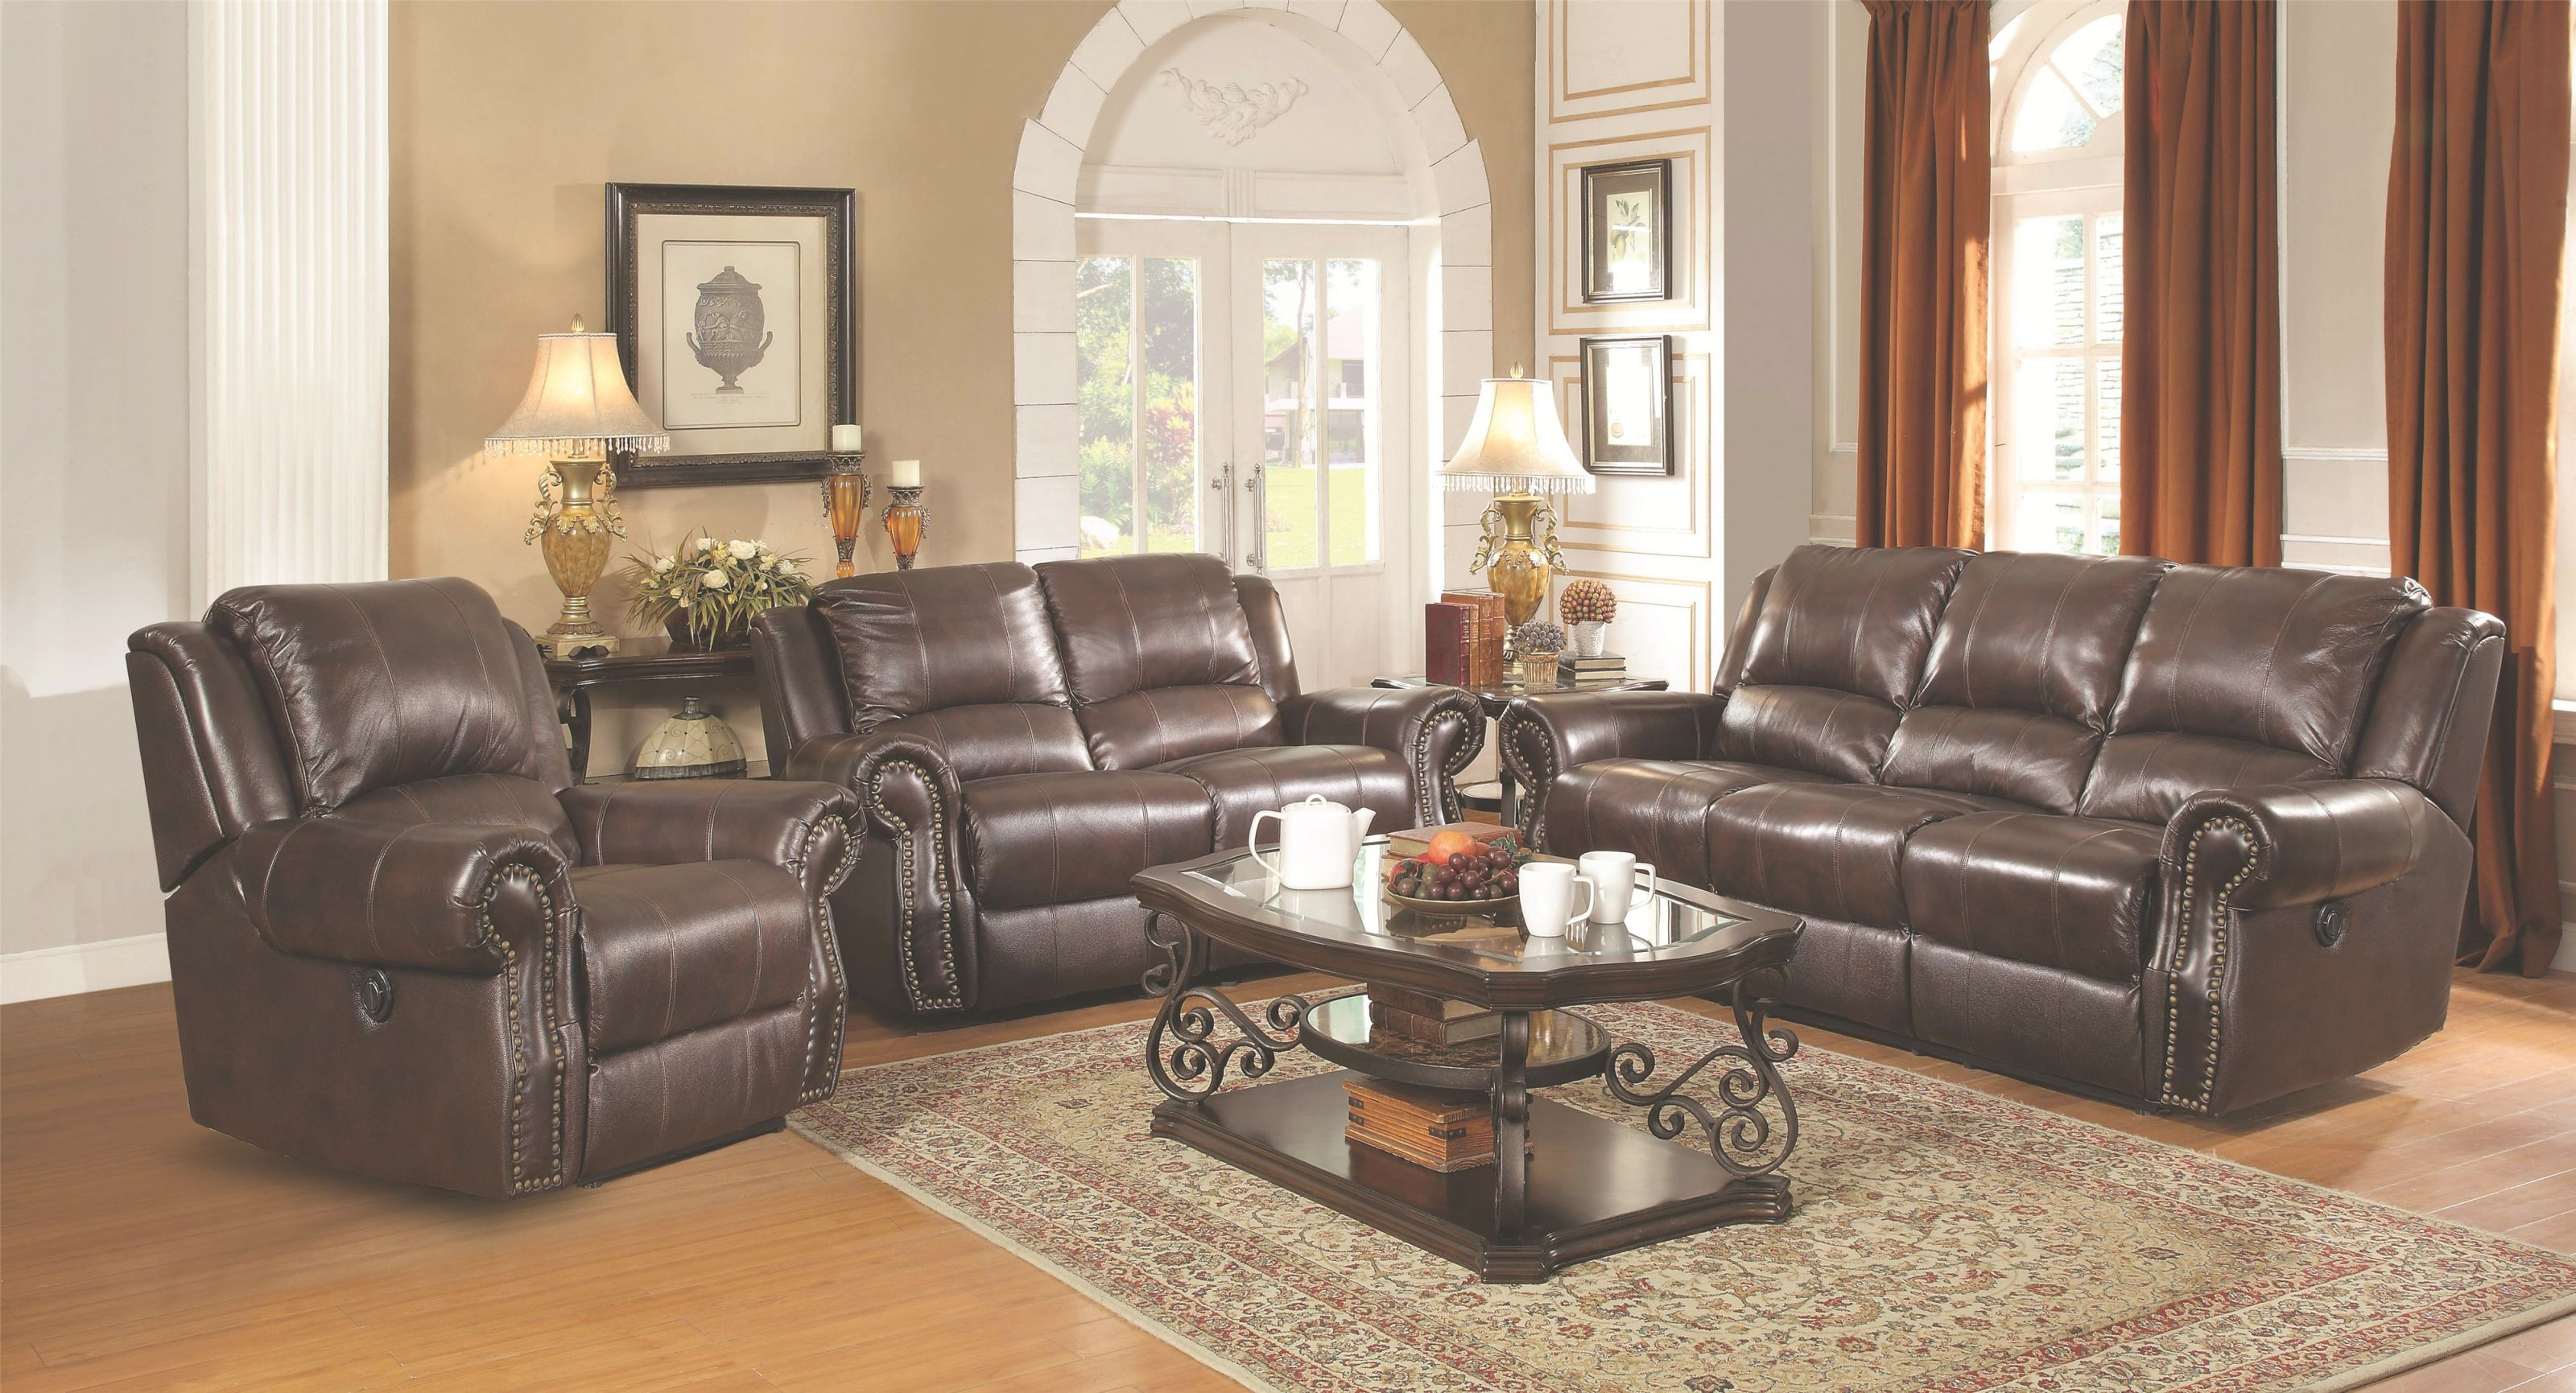 Sir Rawlinson Traditional Reclining Sofa With Nailhead Studs within Traditional Living Room Furniture